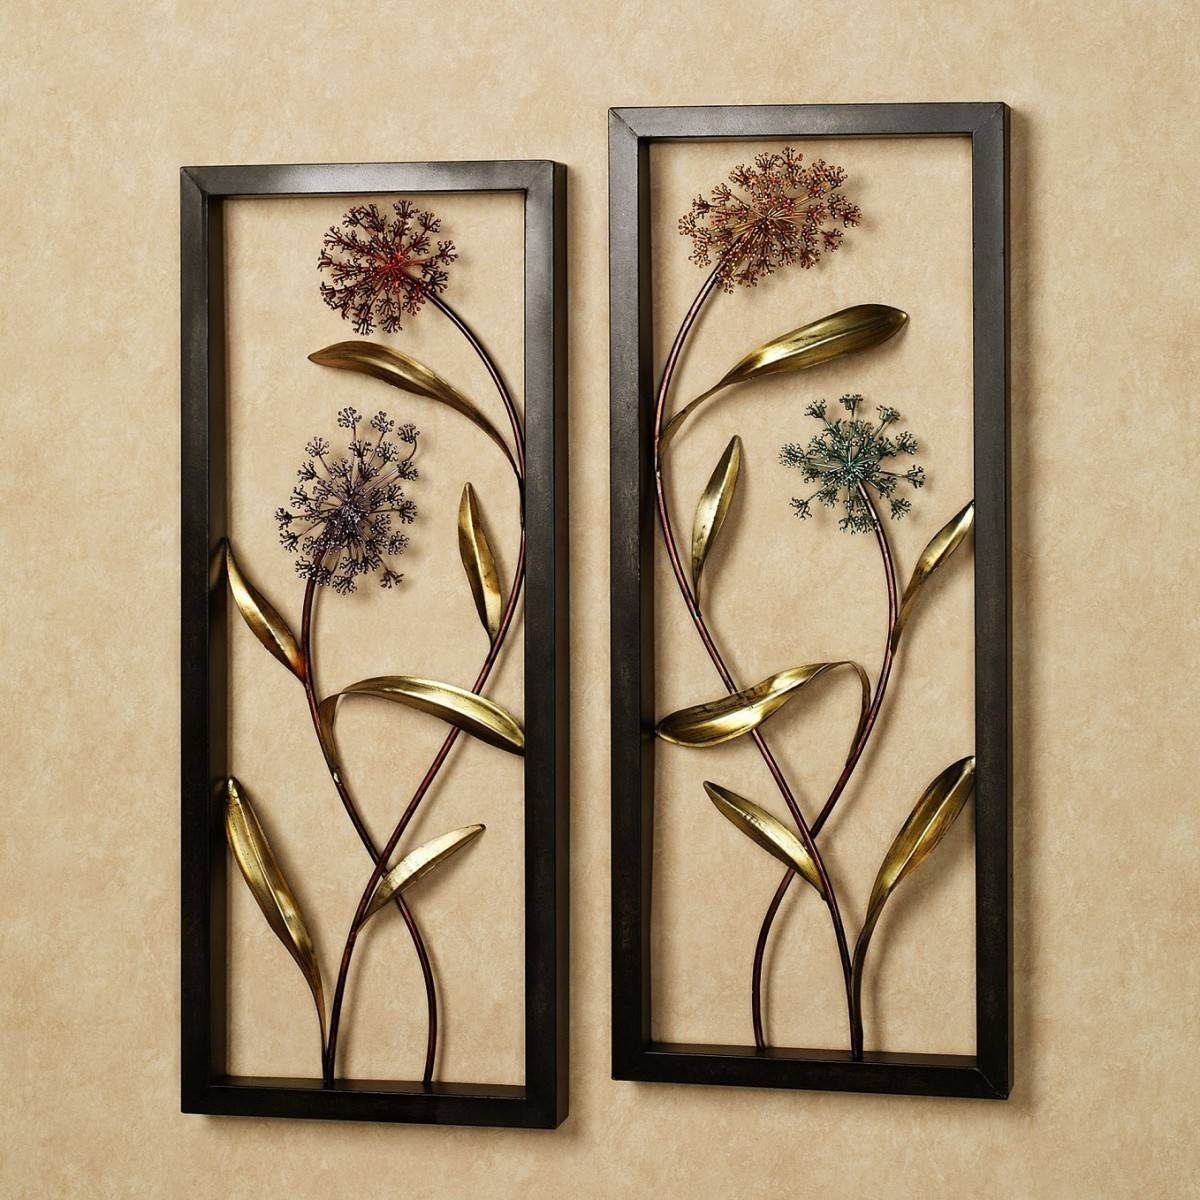 Metal Wall Art Panels For Interior Décor Pertaining To 2017 Outdoor Metal Wall Art Panels (View 5 of 20)